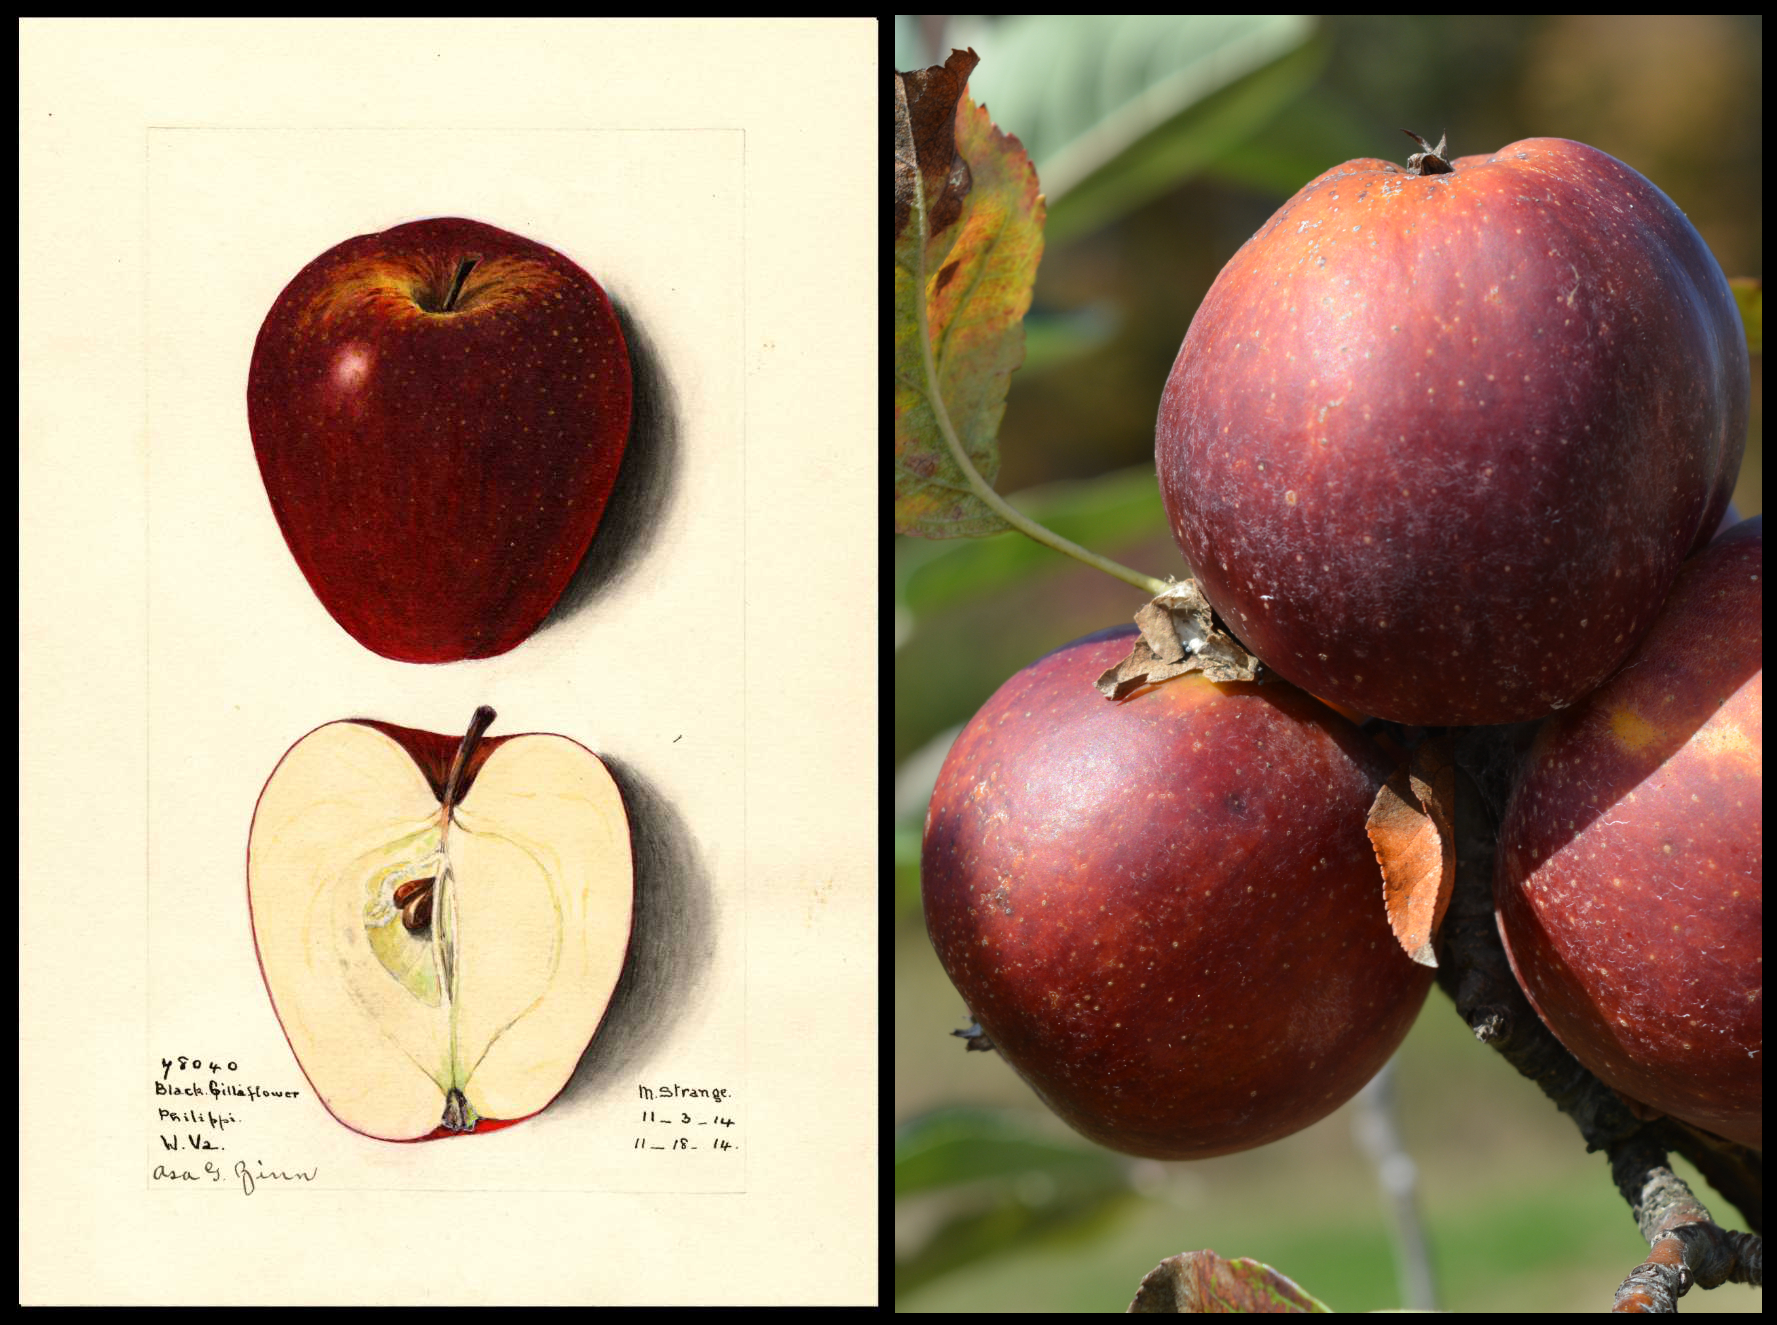 dark red apple with tiny white dots and patches of orange